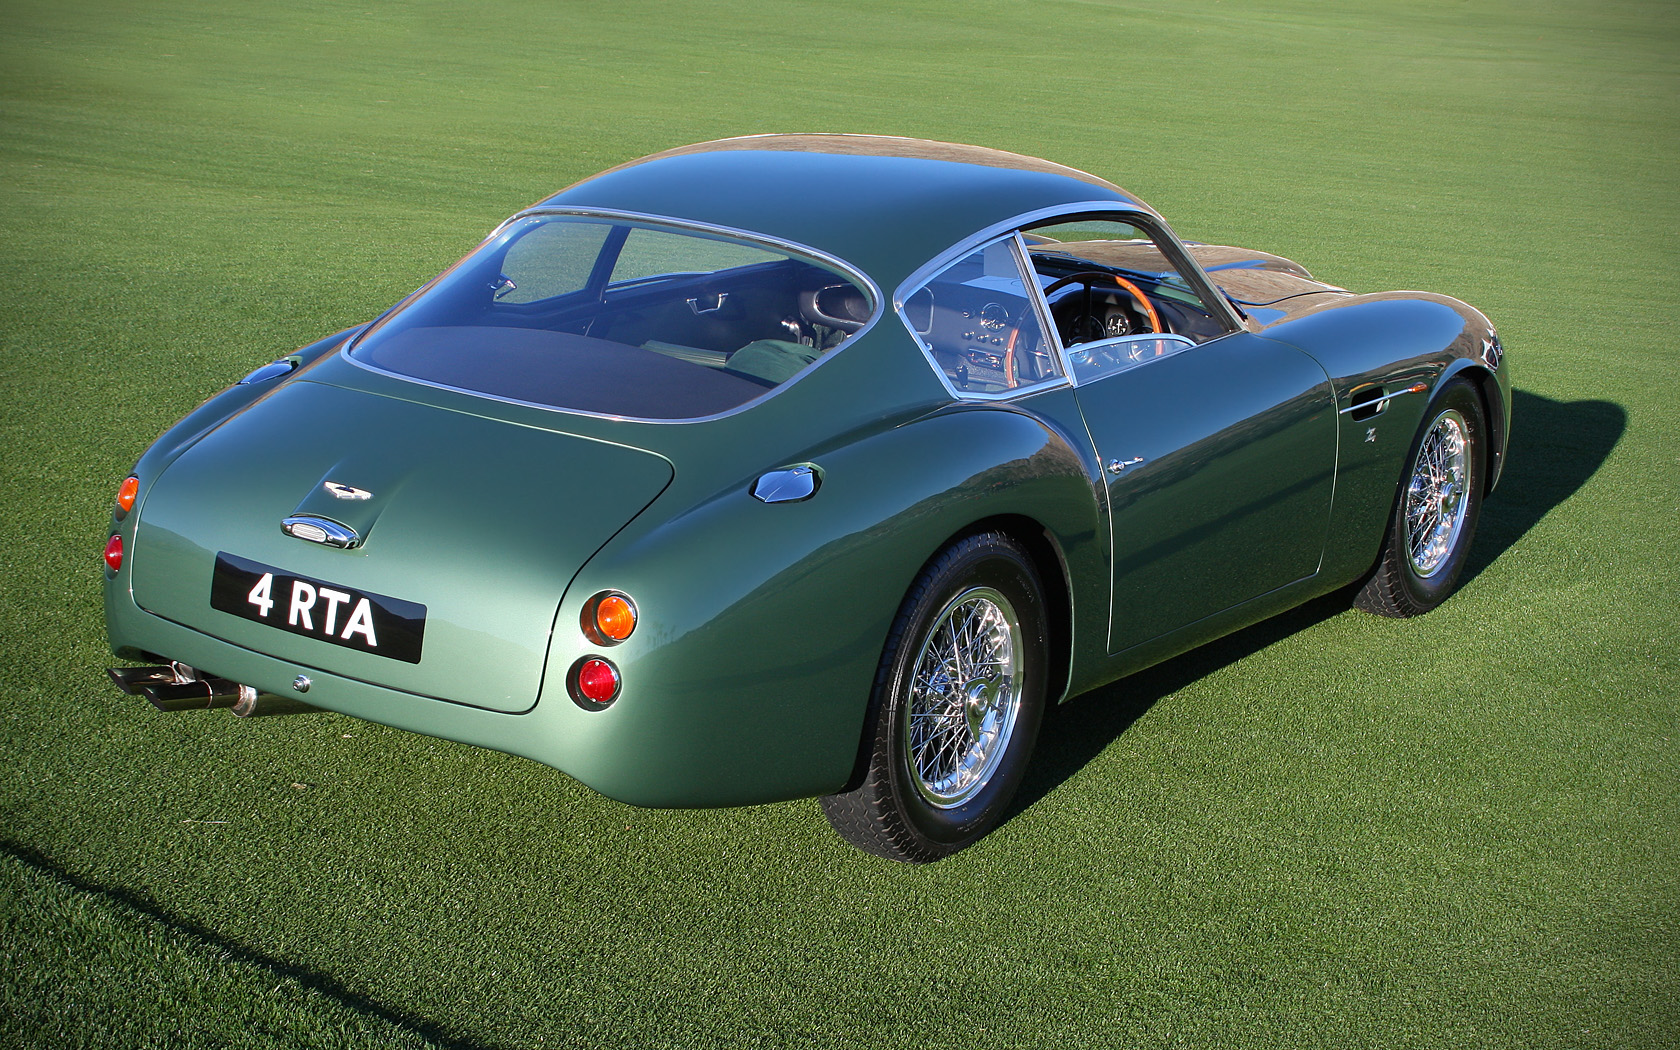 All Types aston db4 zagato : File:1961 Aston Martin DB4 GT Zagato - rvr.jpg - Wikimedia Commons